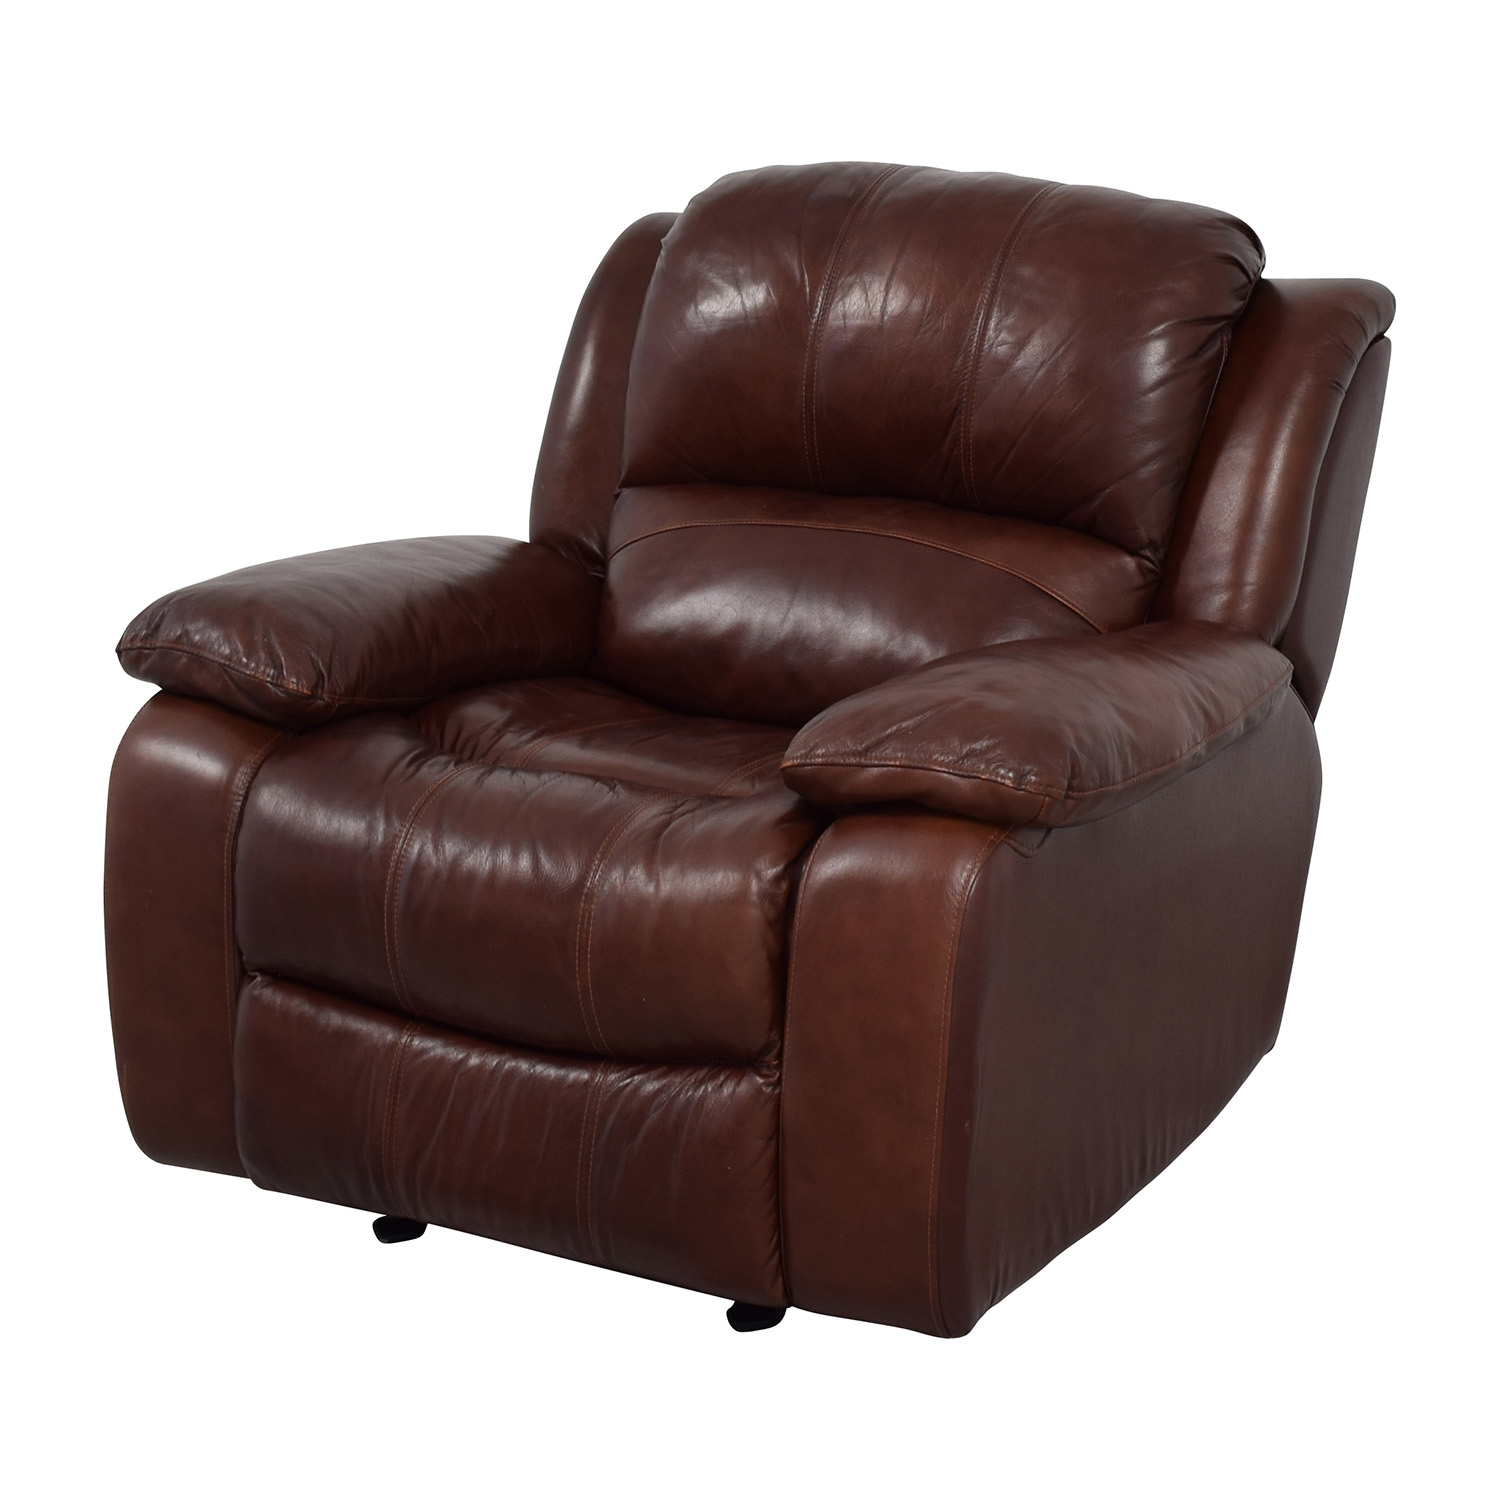 Raymour and Flanigan Raymour and Flanigan Bryant II Leather Glider Recliner